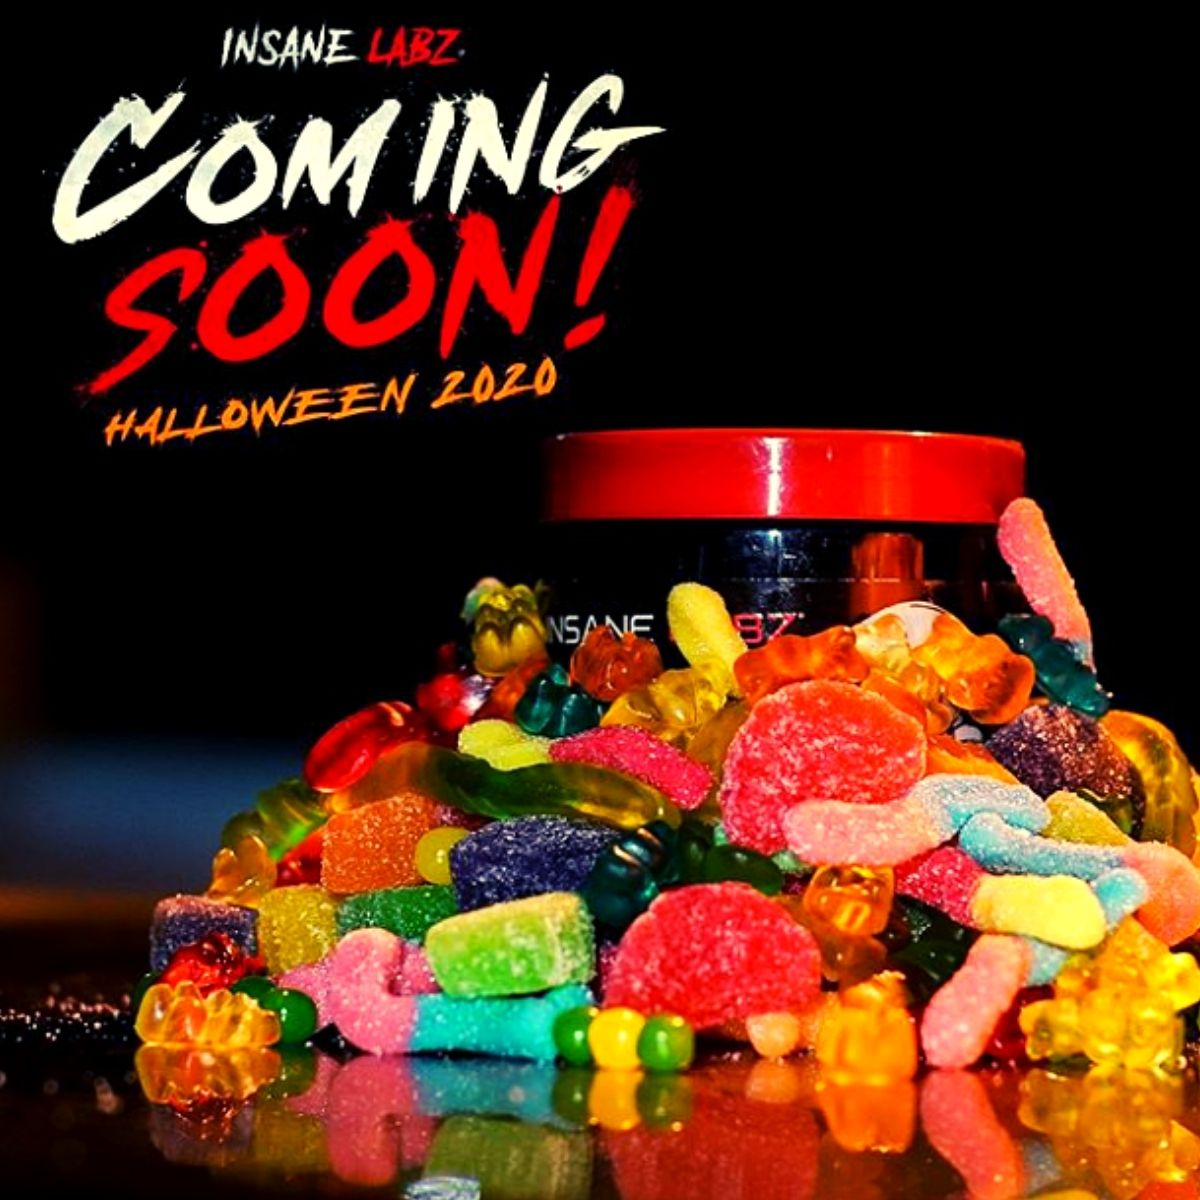 Does Insane Labz Have a Gummy Candy Supplement in Store for Halloween?